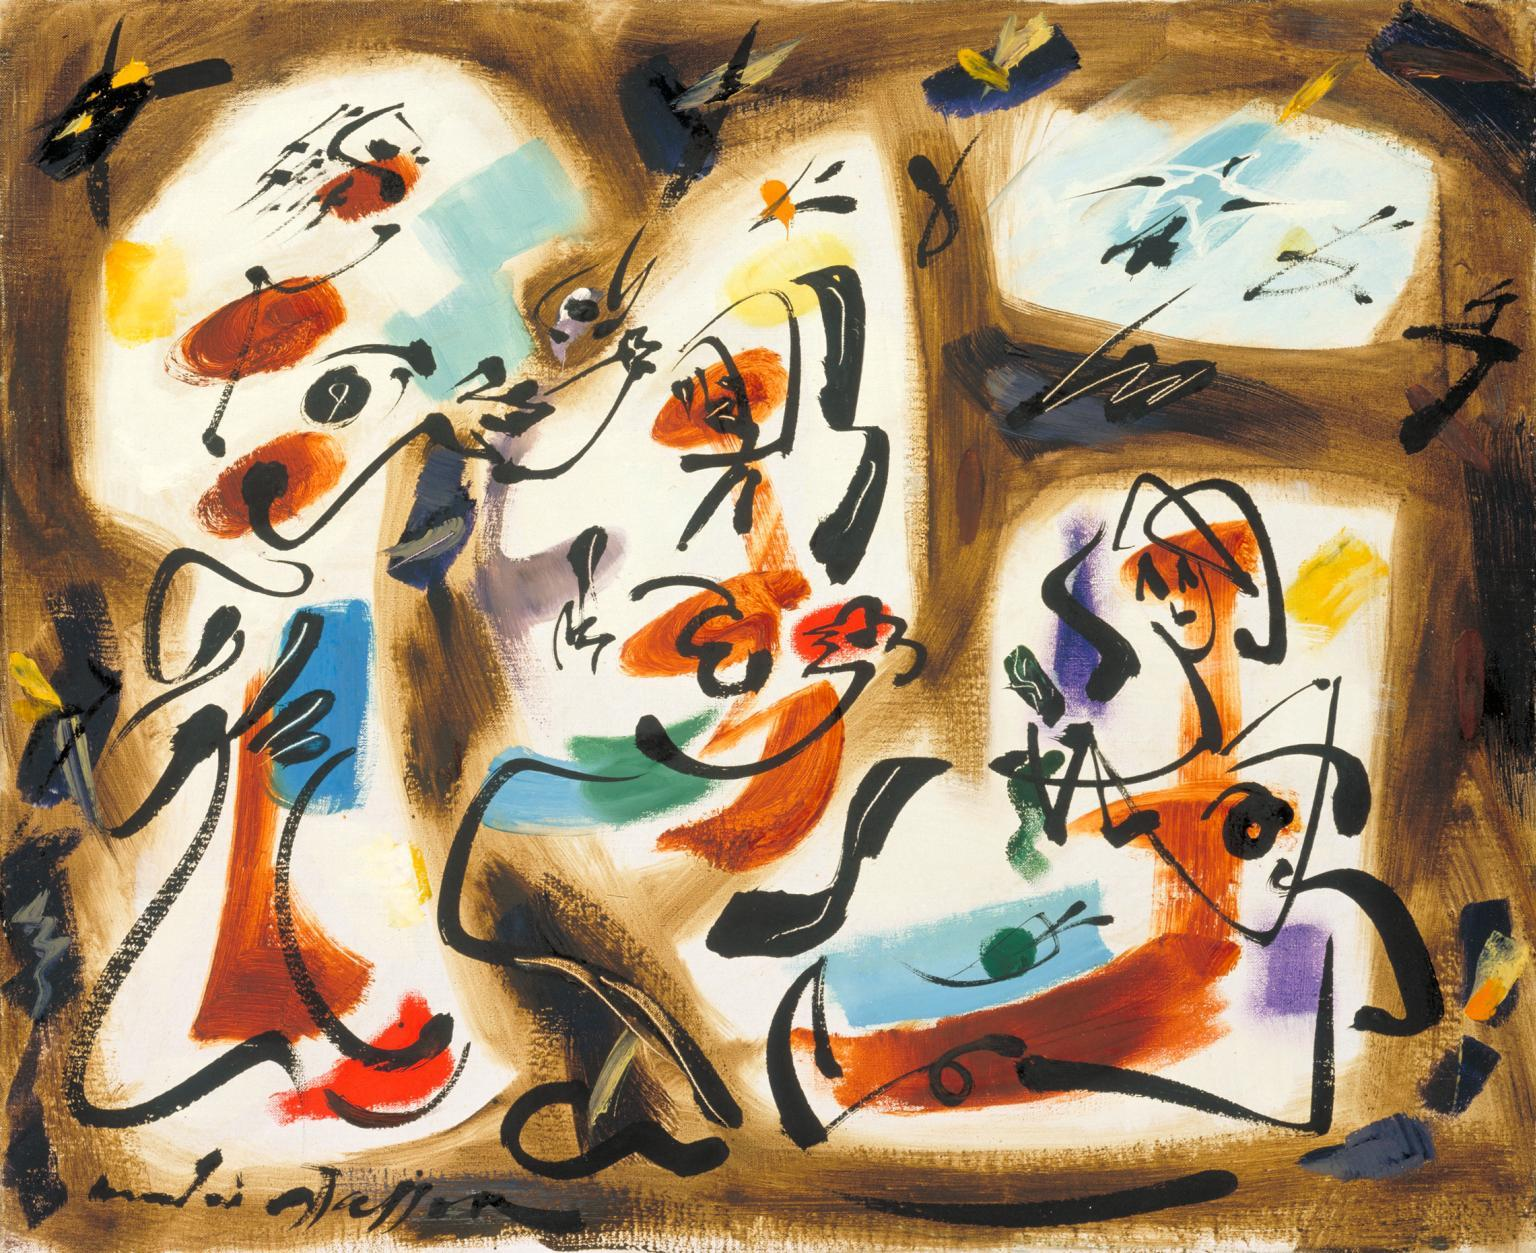 André Masson, 'Kitchen-maids', 1962. Photo: Tate via The Estate of André Masson